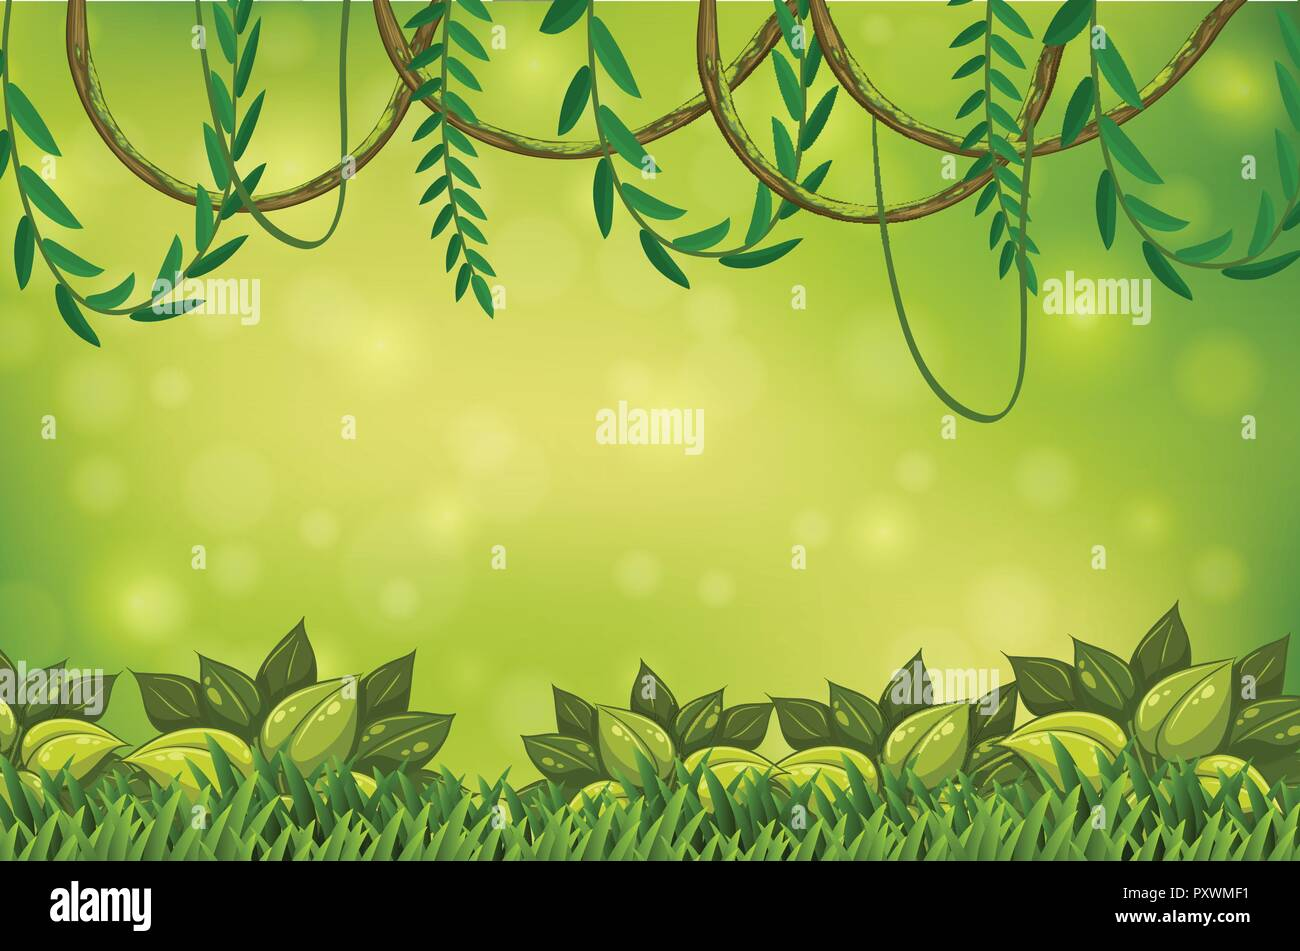 A Green Jungle And Vine Wallpaper Illustration Stock Vector